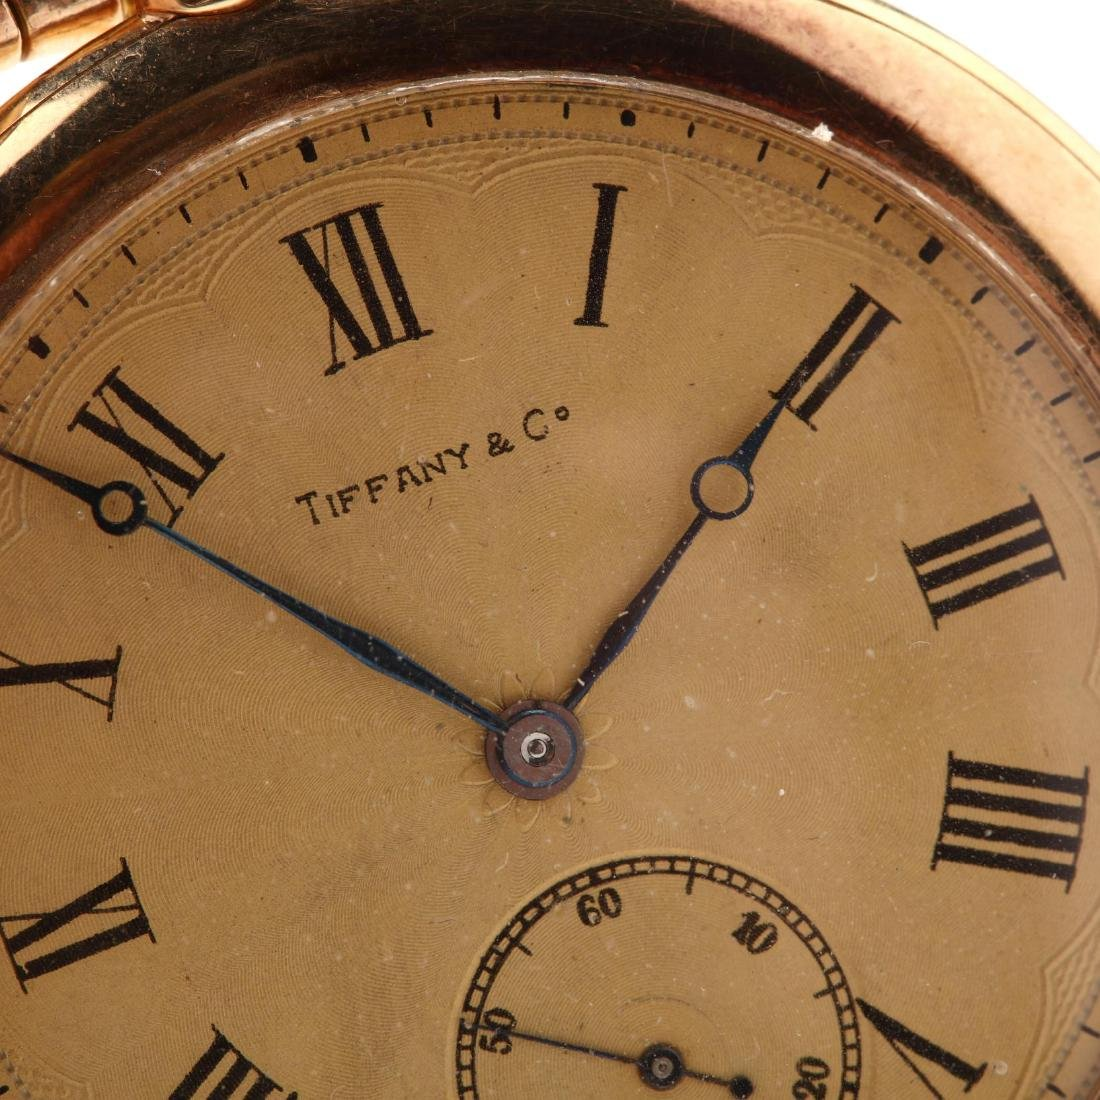 Vintage Tiffany & Co. 18KT Pocket Watch with - 7